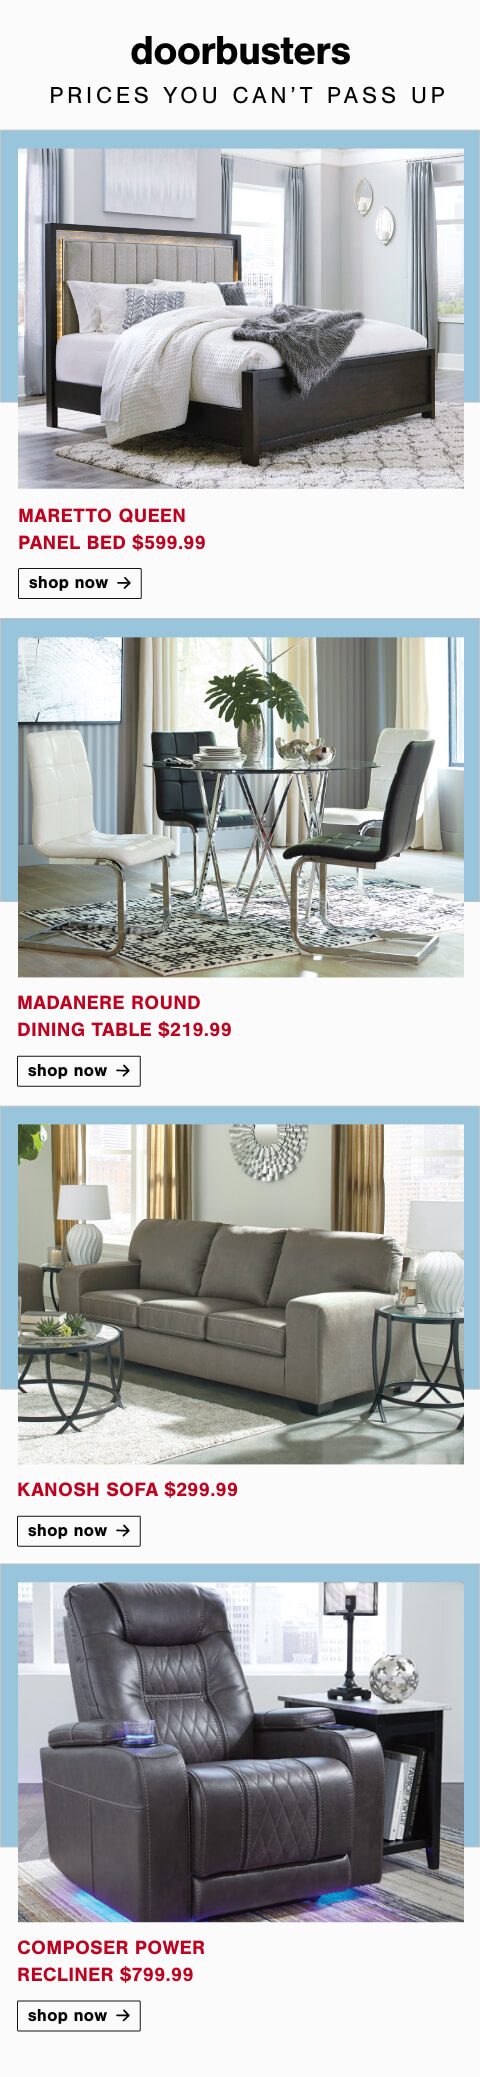 Maretto Queen Panel Bed, Madanere Round Dining Table, Kanosh Sofa, Composer Power Recliner